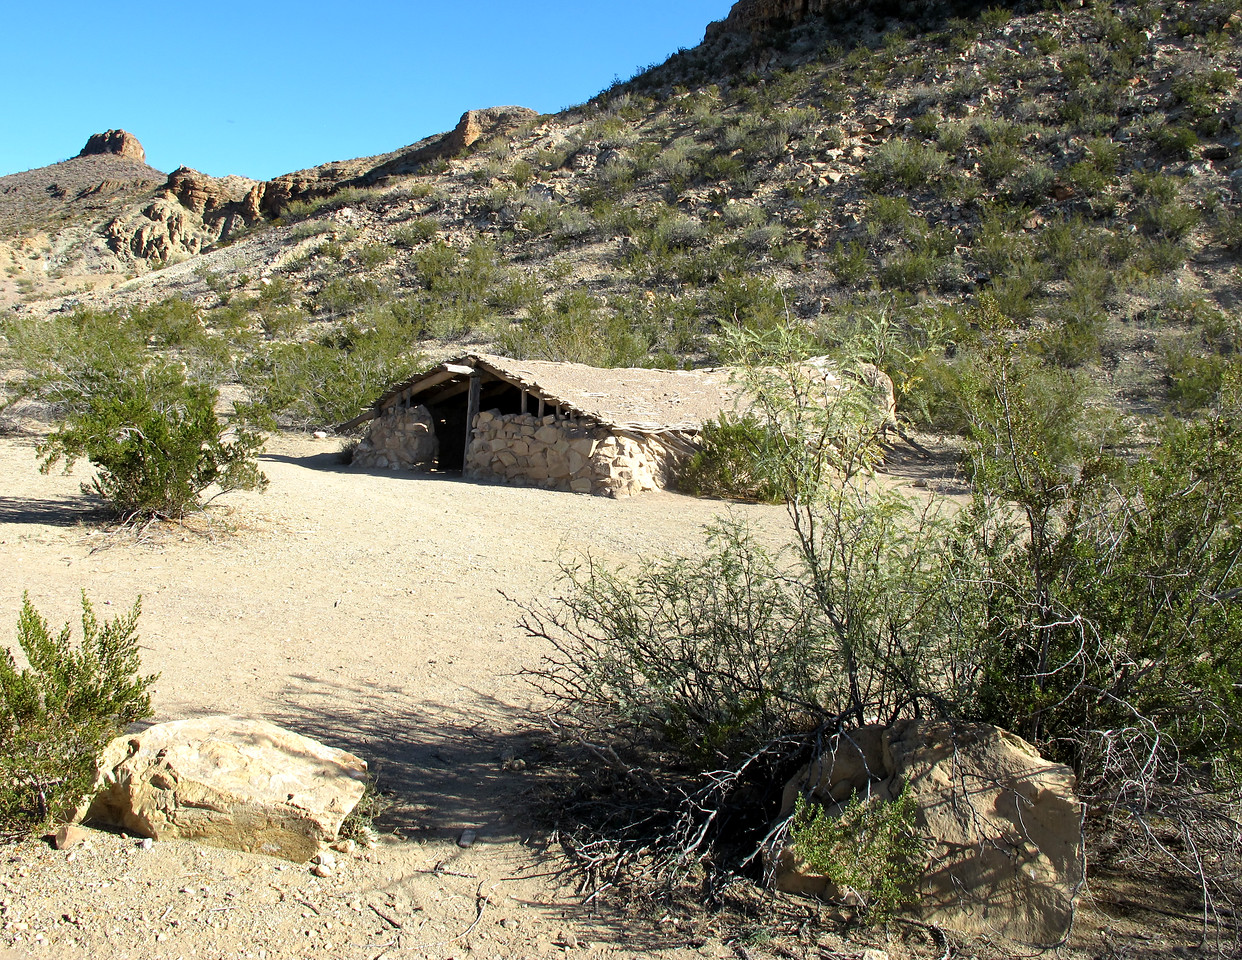 My understanding is that all of Big Bend used to be a ranch, so I imagine that this shelter was used by the ranchhands. I'll have to do some research on that.